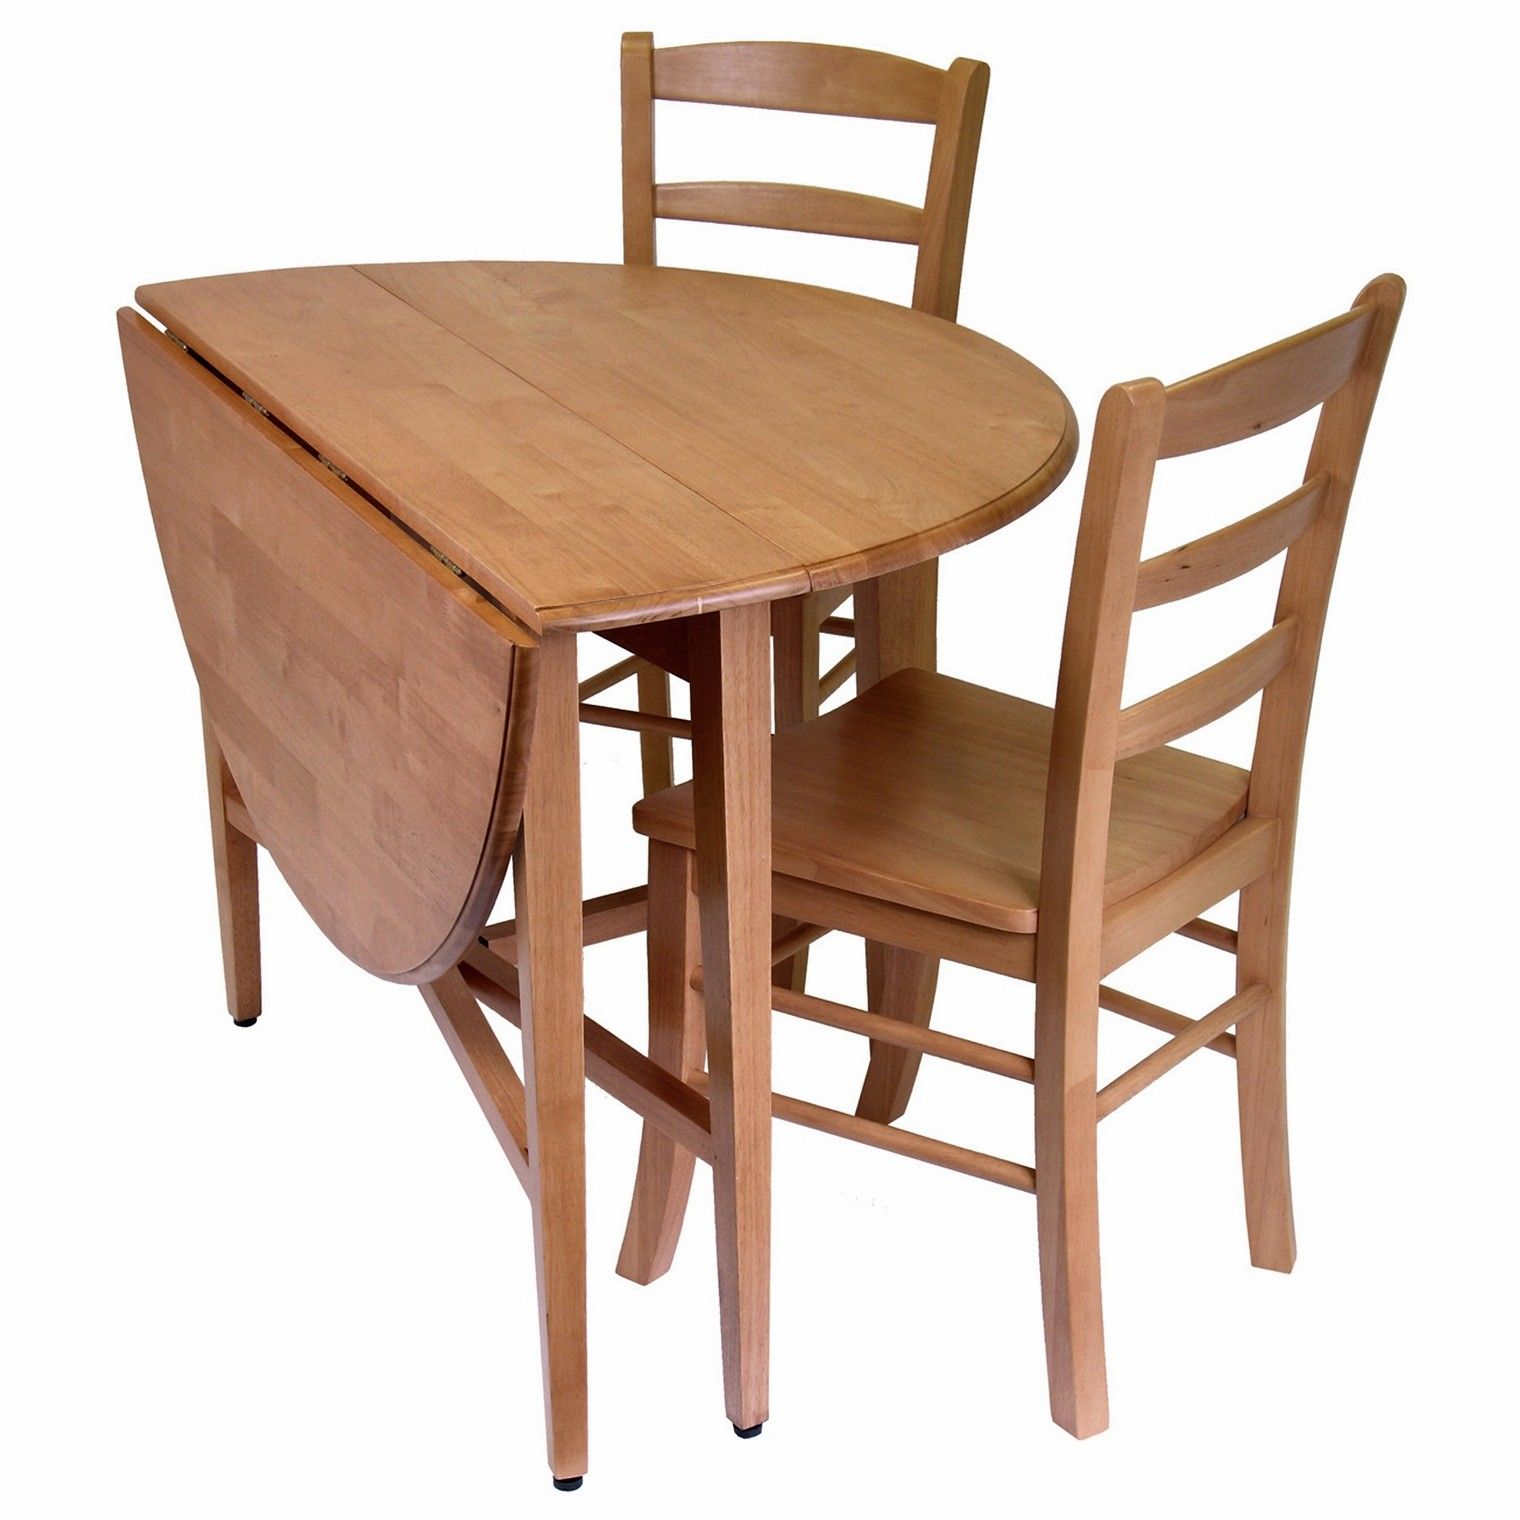 3 piece drop leaf dining set two small dinette sets for two people hannah 3piece dining set drop leaf table with ladder back chairs